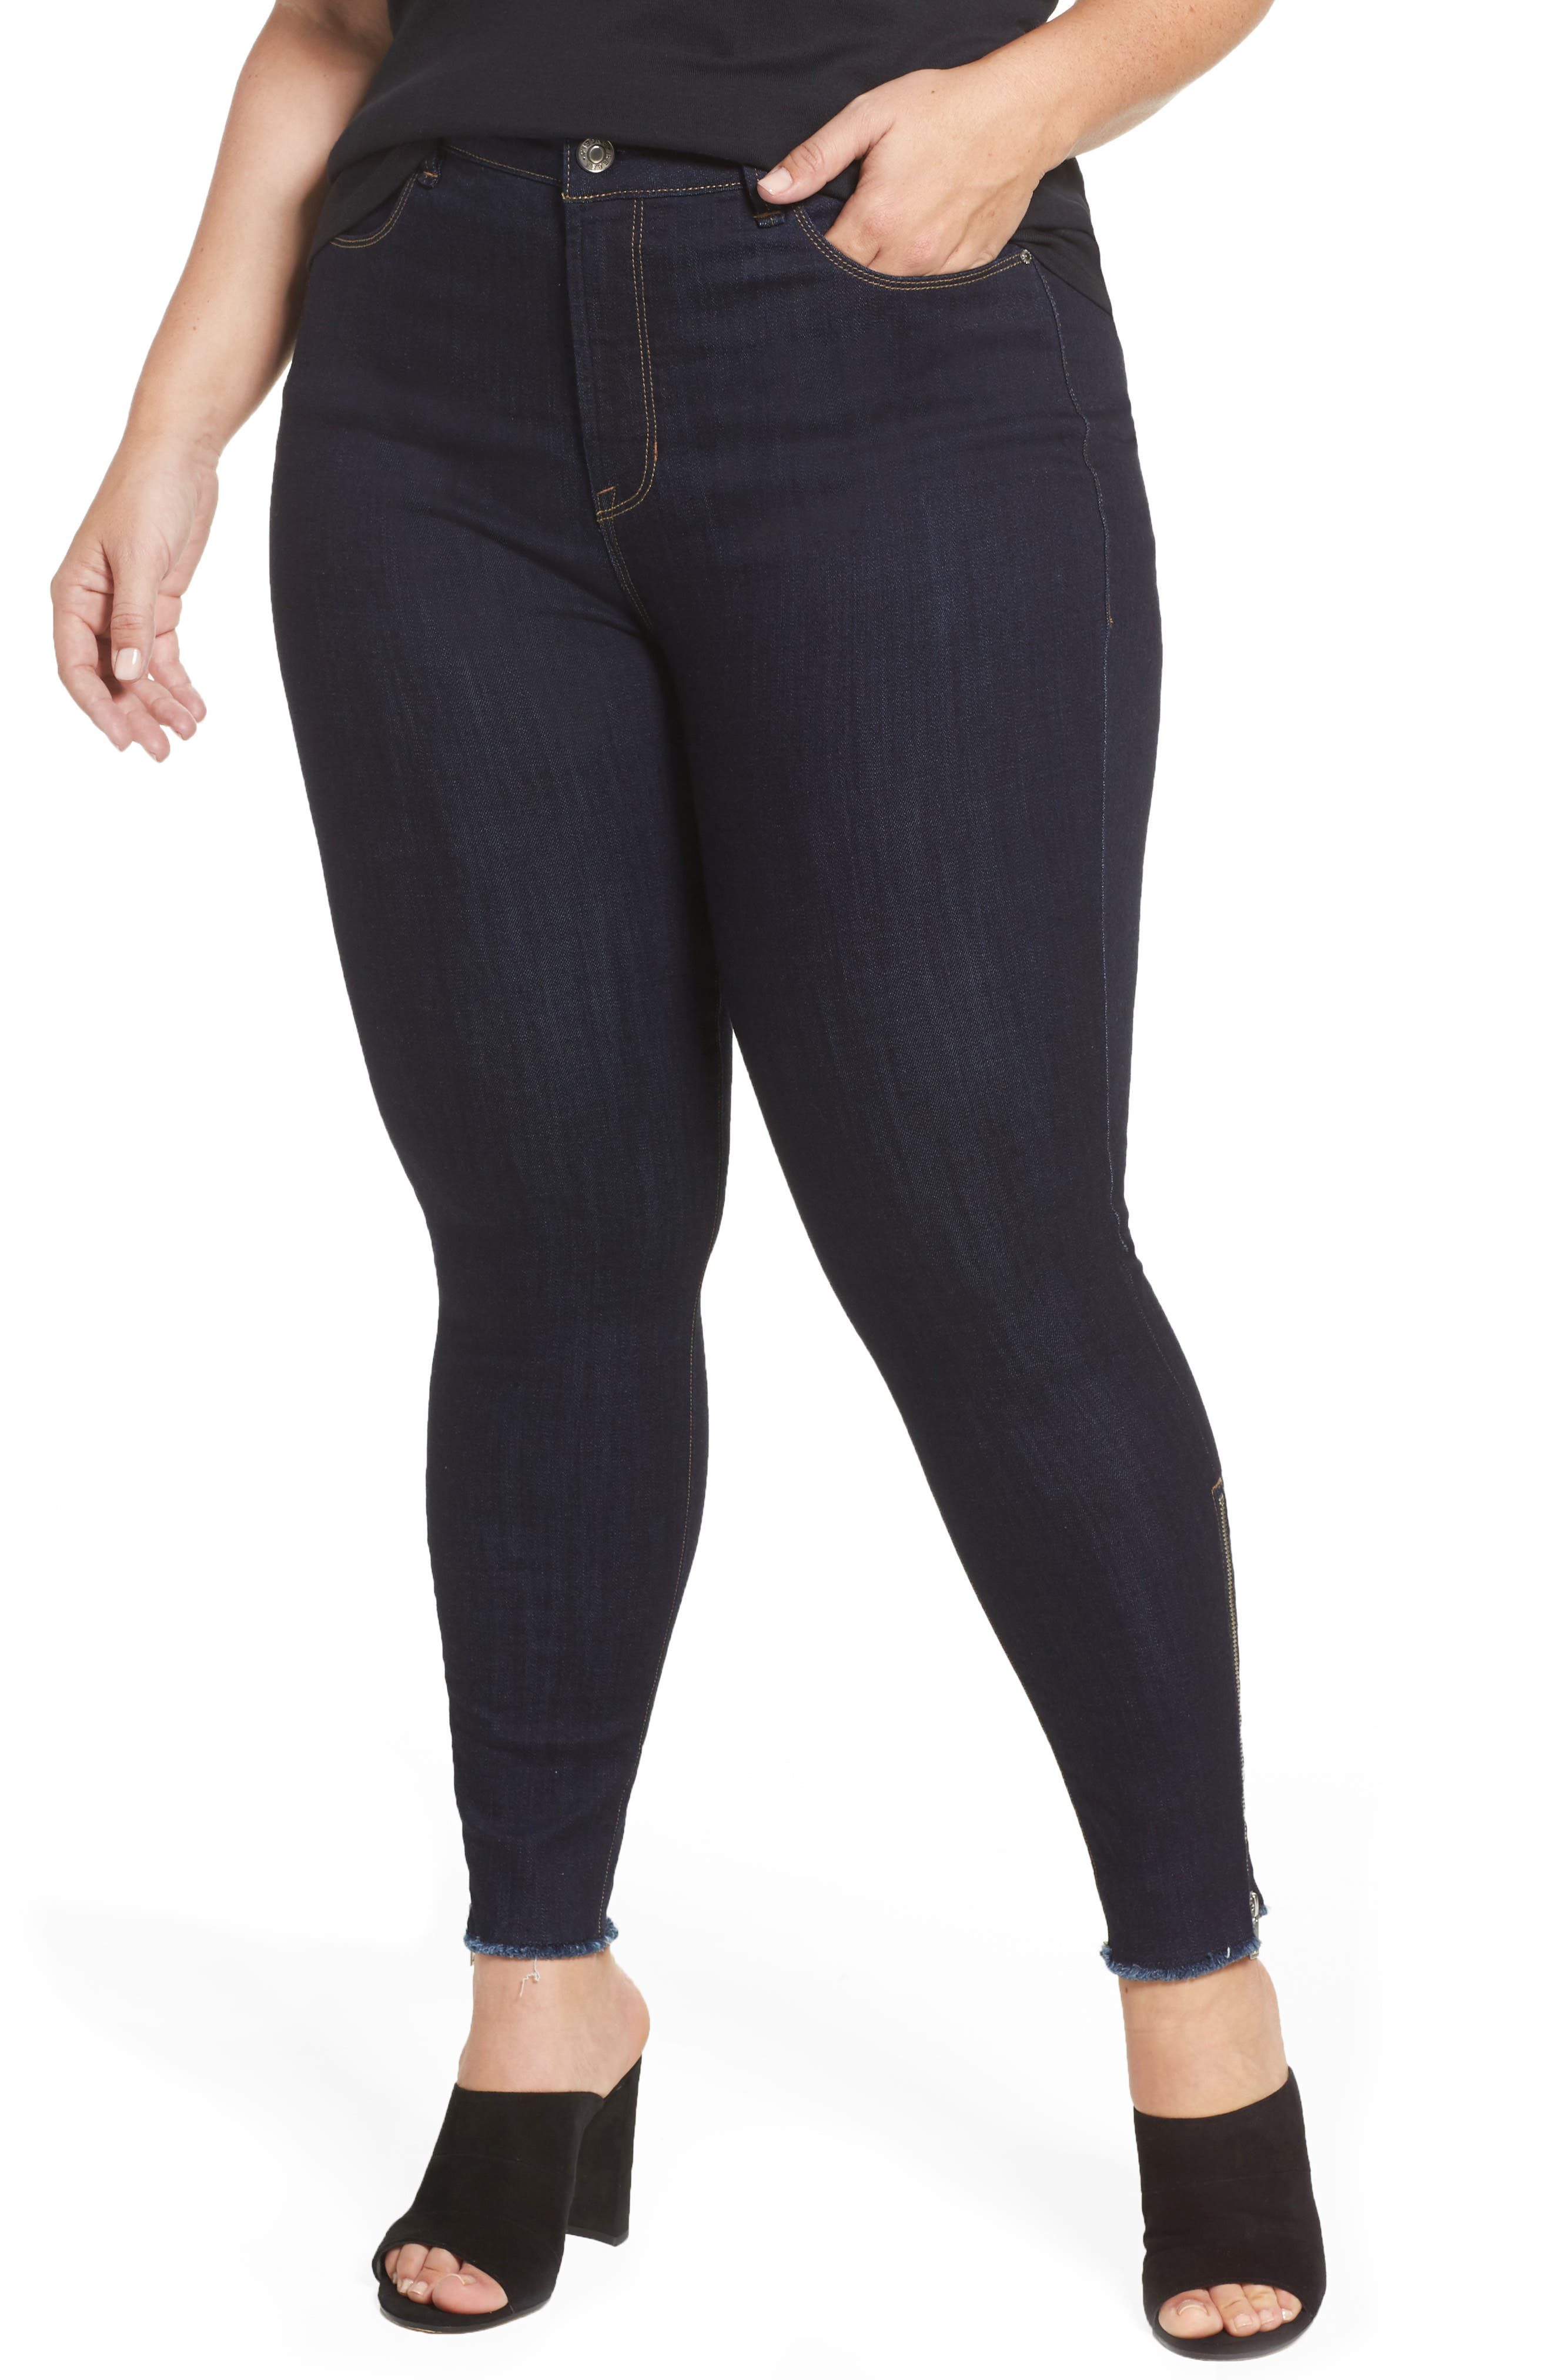 REBEL WILSON X ANGELS The Icon High Rise Super Skinny Jeans (Plus Size)